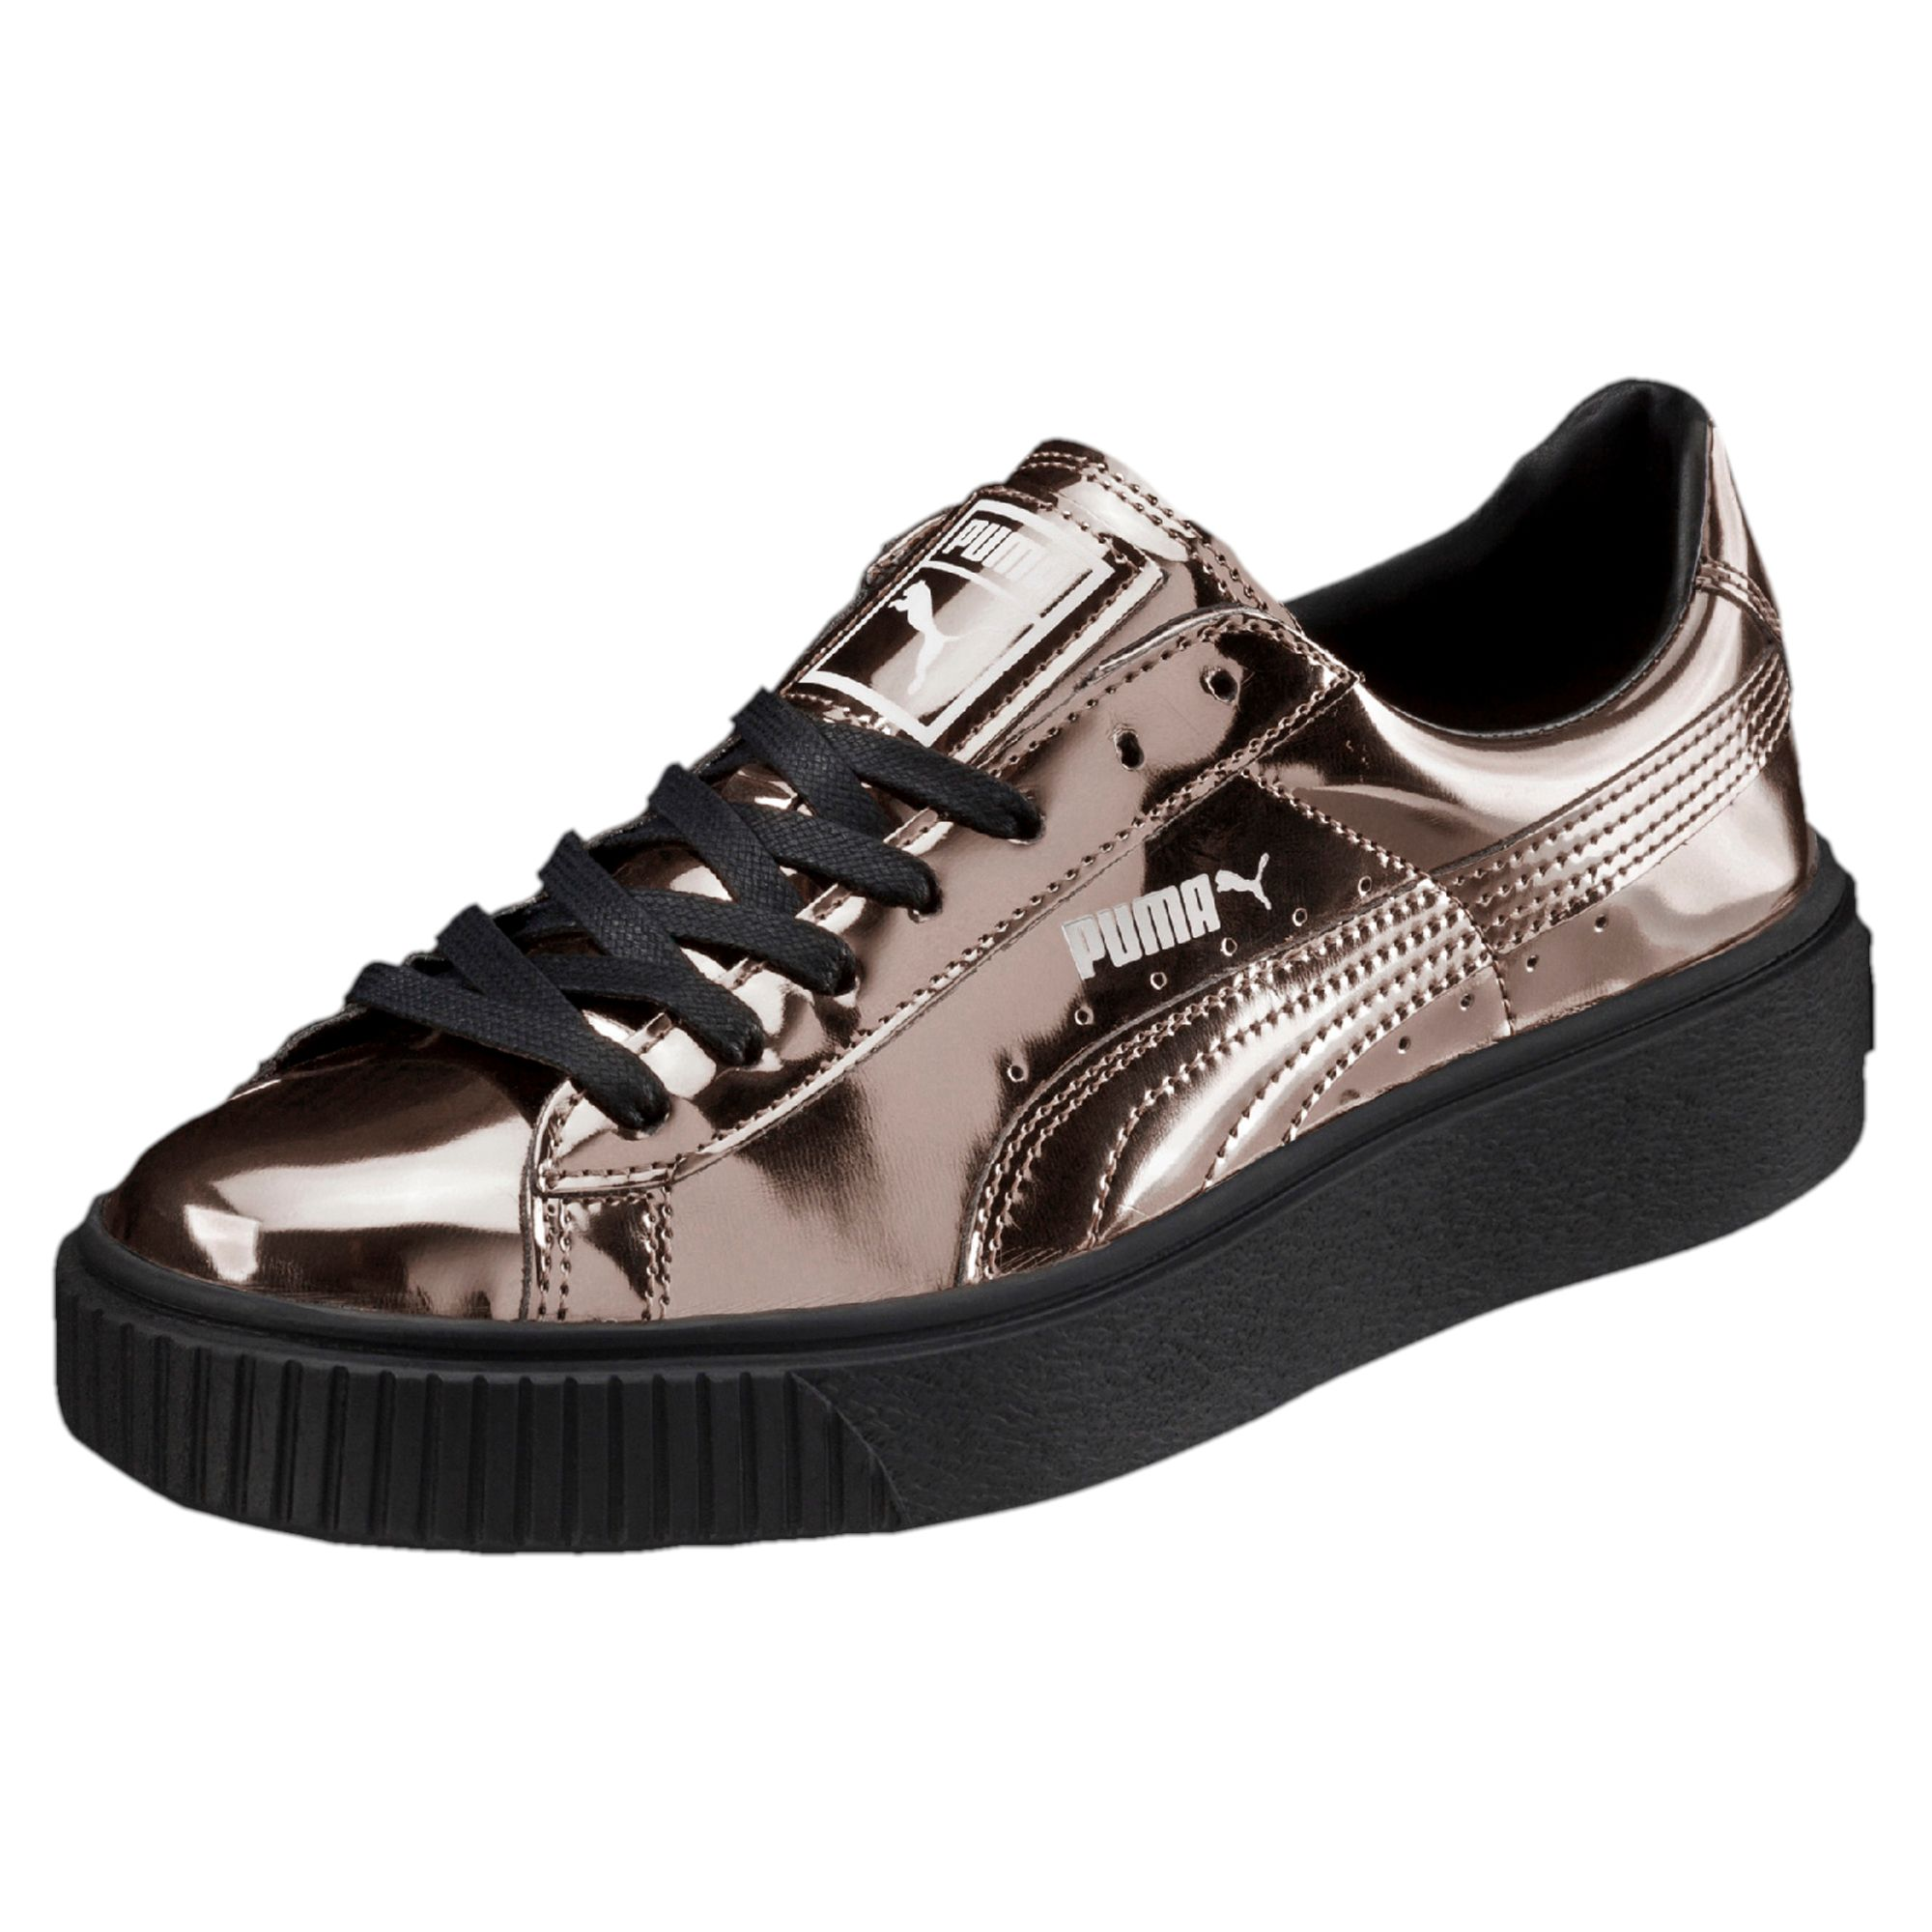 puma basket platform patent damen schuhe von. Black Bedroom Furniture Sets. Home Design Ideas